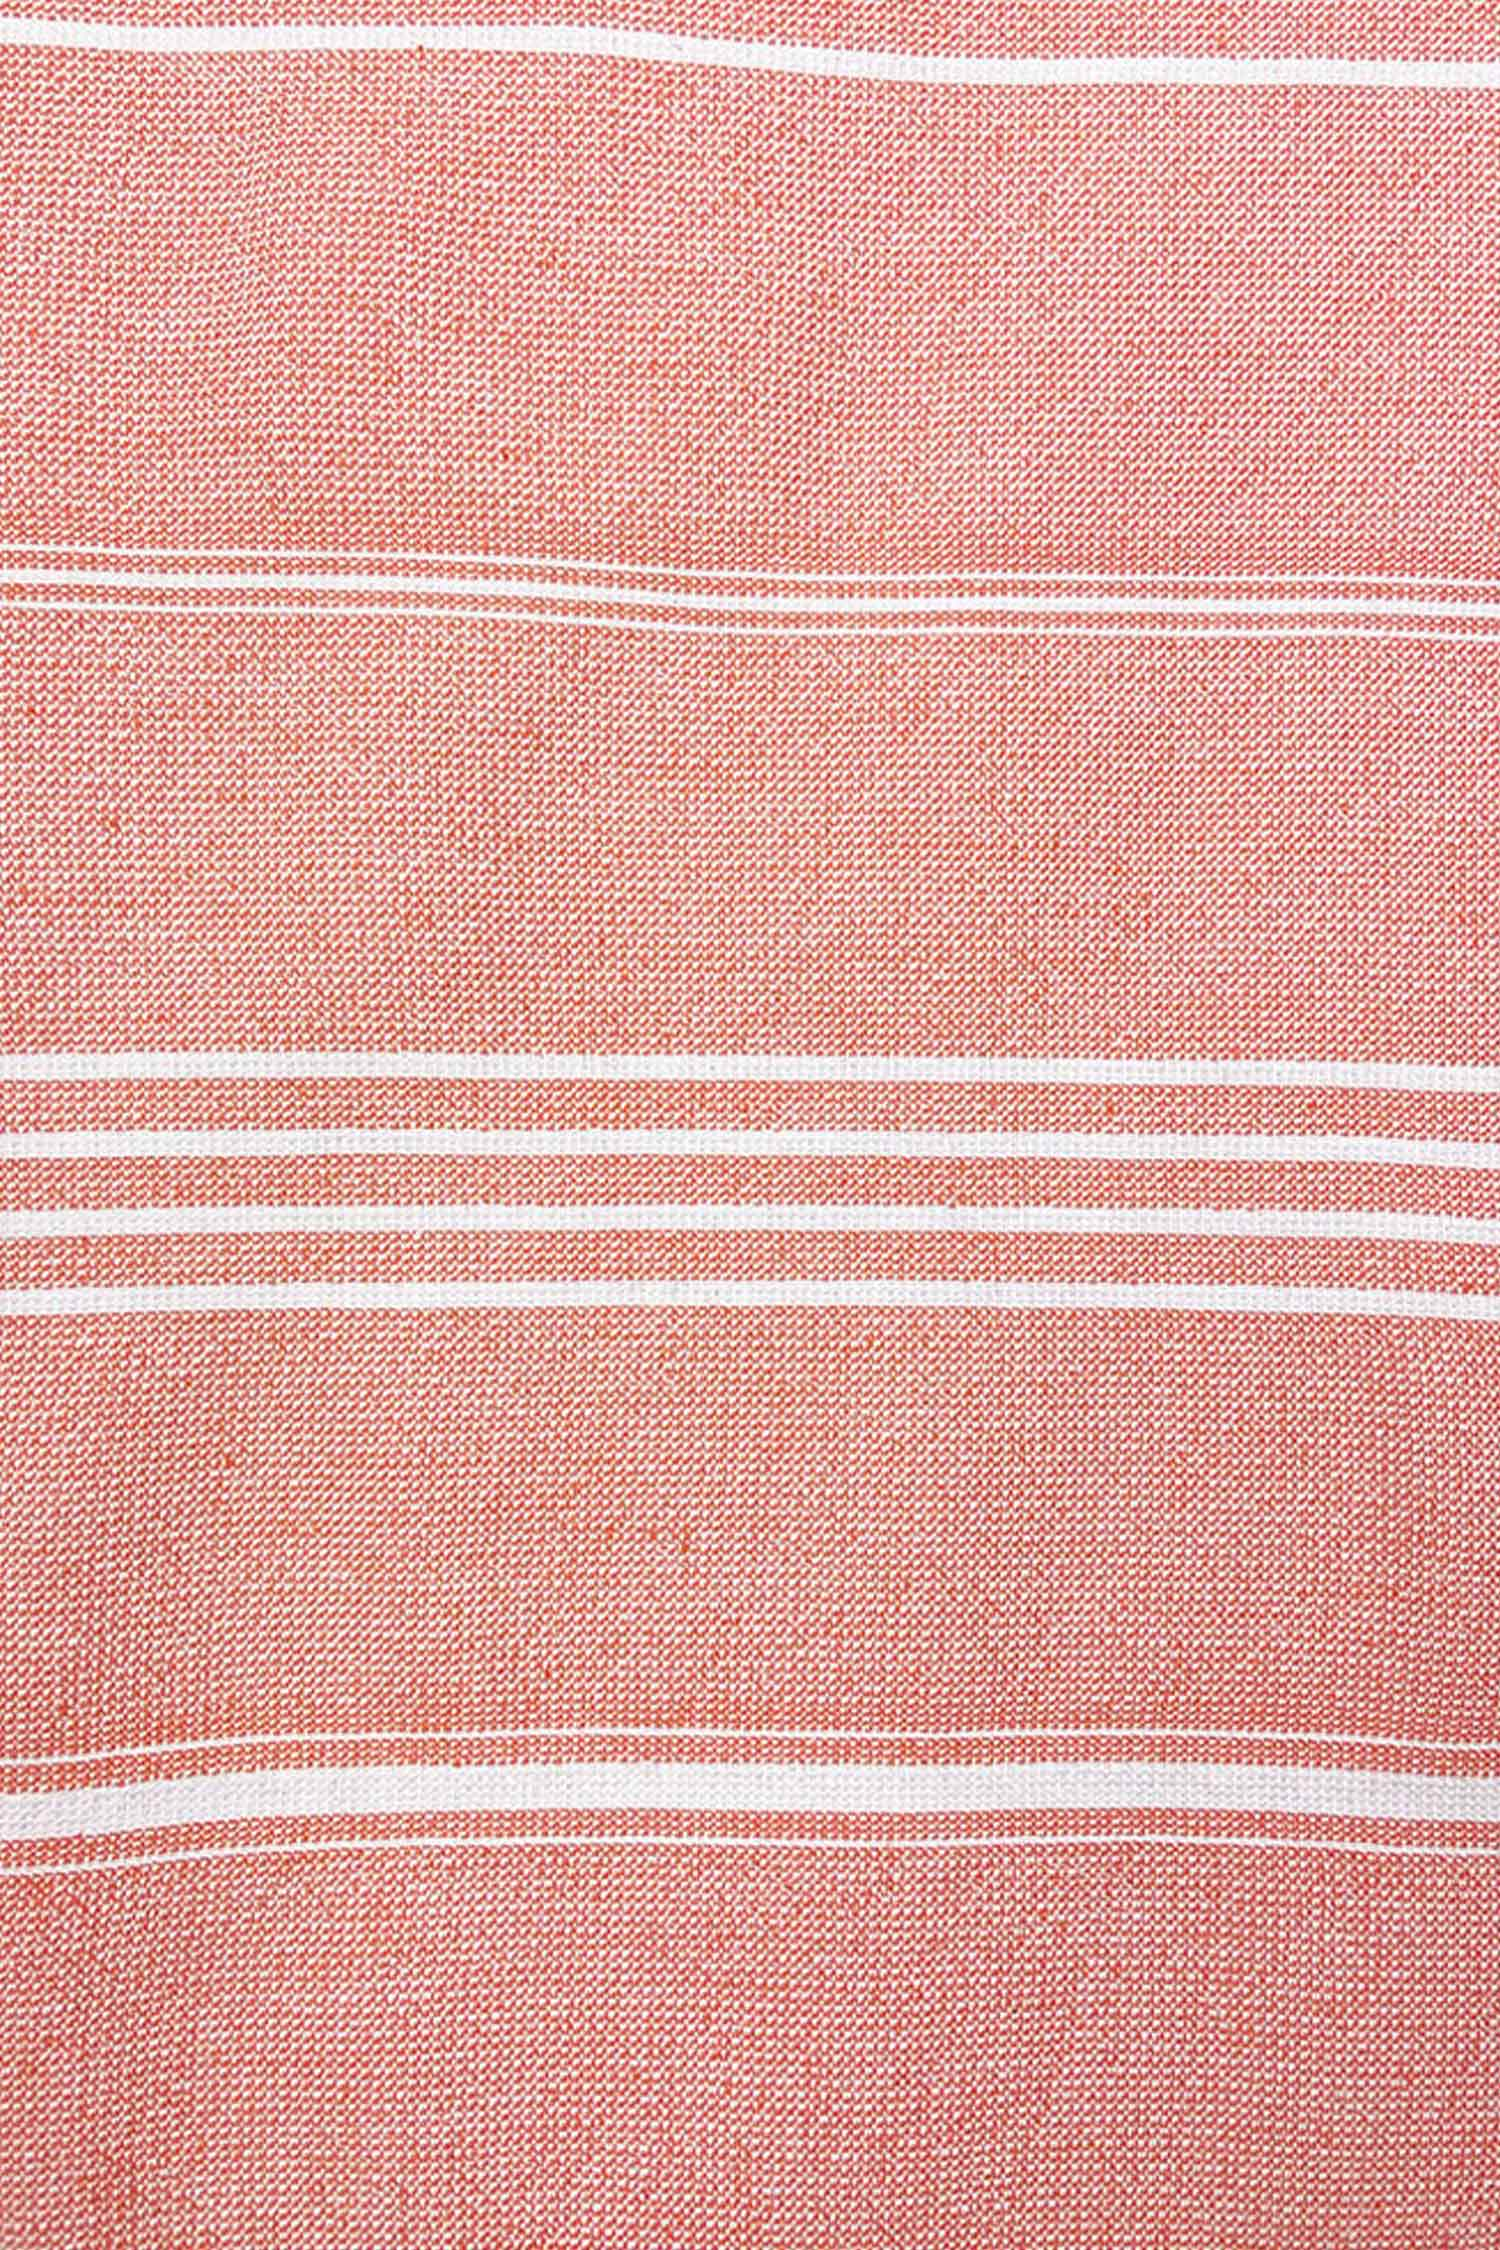 "Serviette ""Fouta"" - Rose Saumon"